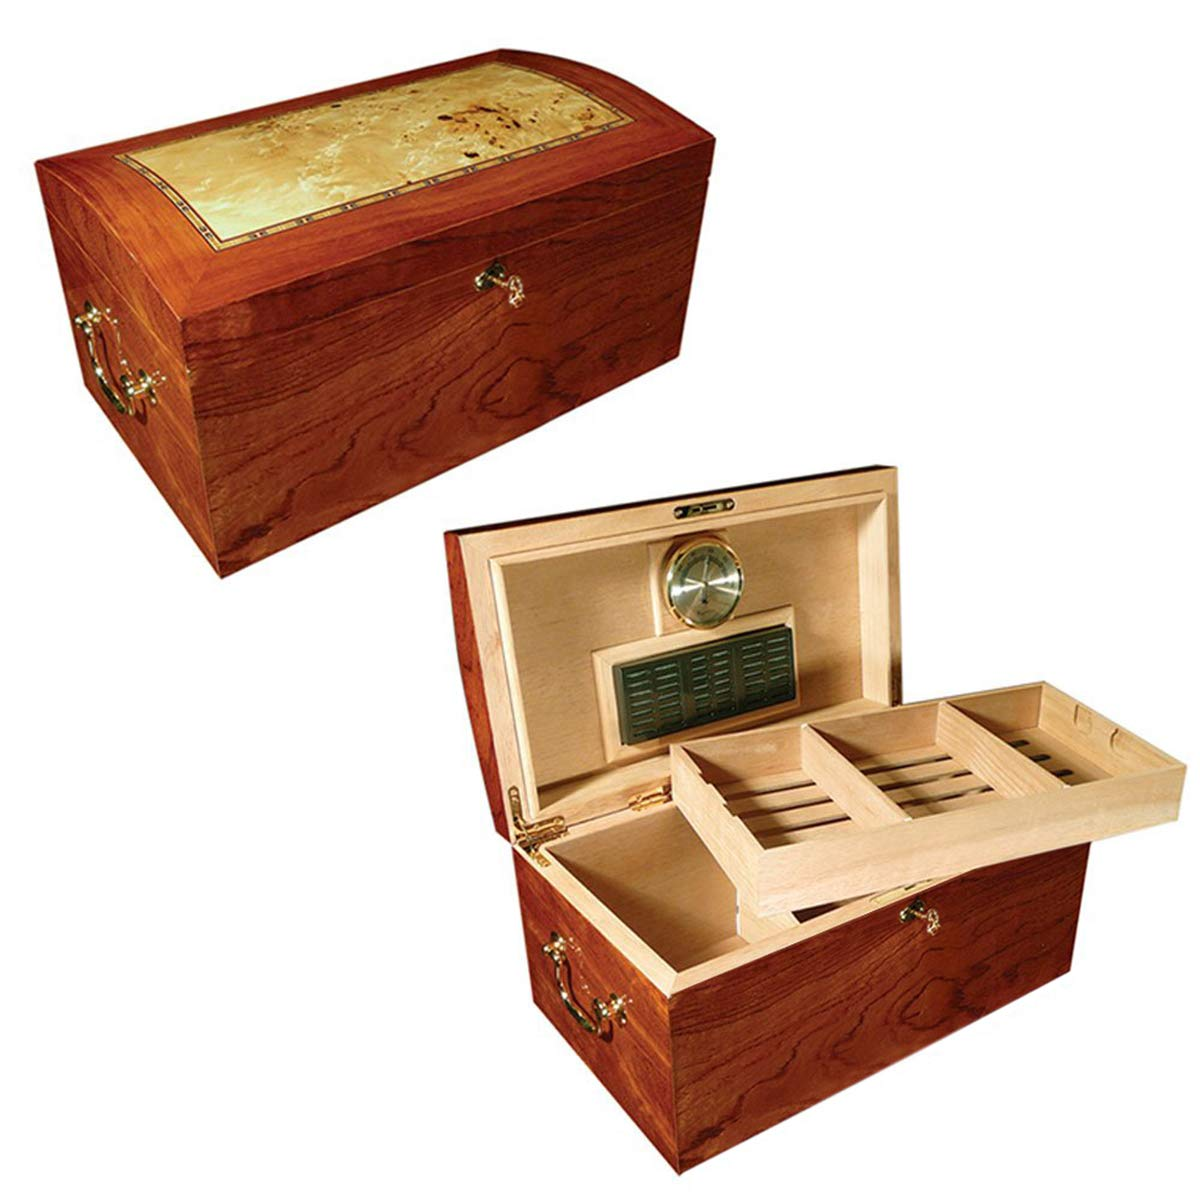 Prestige Import Group - The Broadway Cigar Humidor - Color: Lacquer Burl w/Mappa Wood Inlay